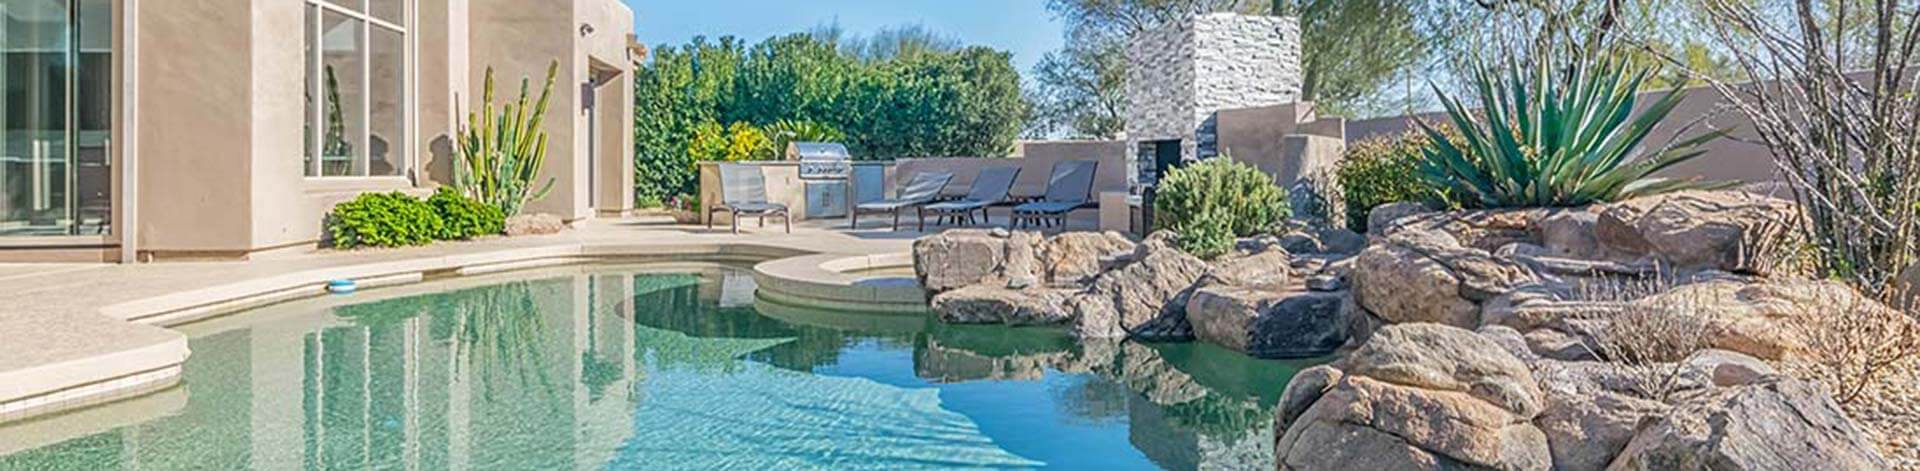 Outdoor Living Spaces in Arizona: Design Tips for Creating a Functional and Relaxing Environment Republic West Remodeling Phoenix